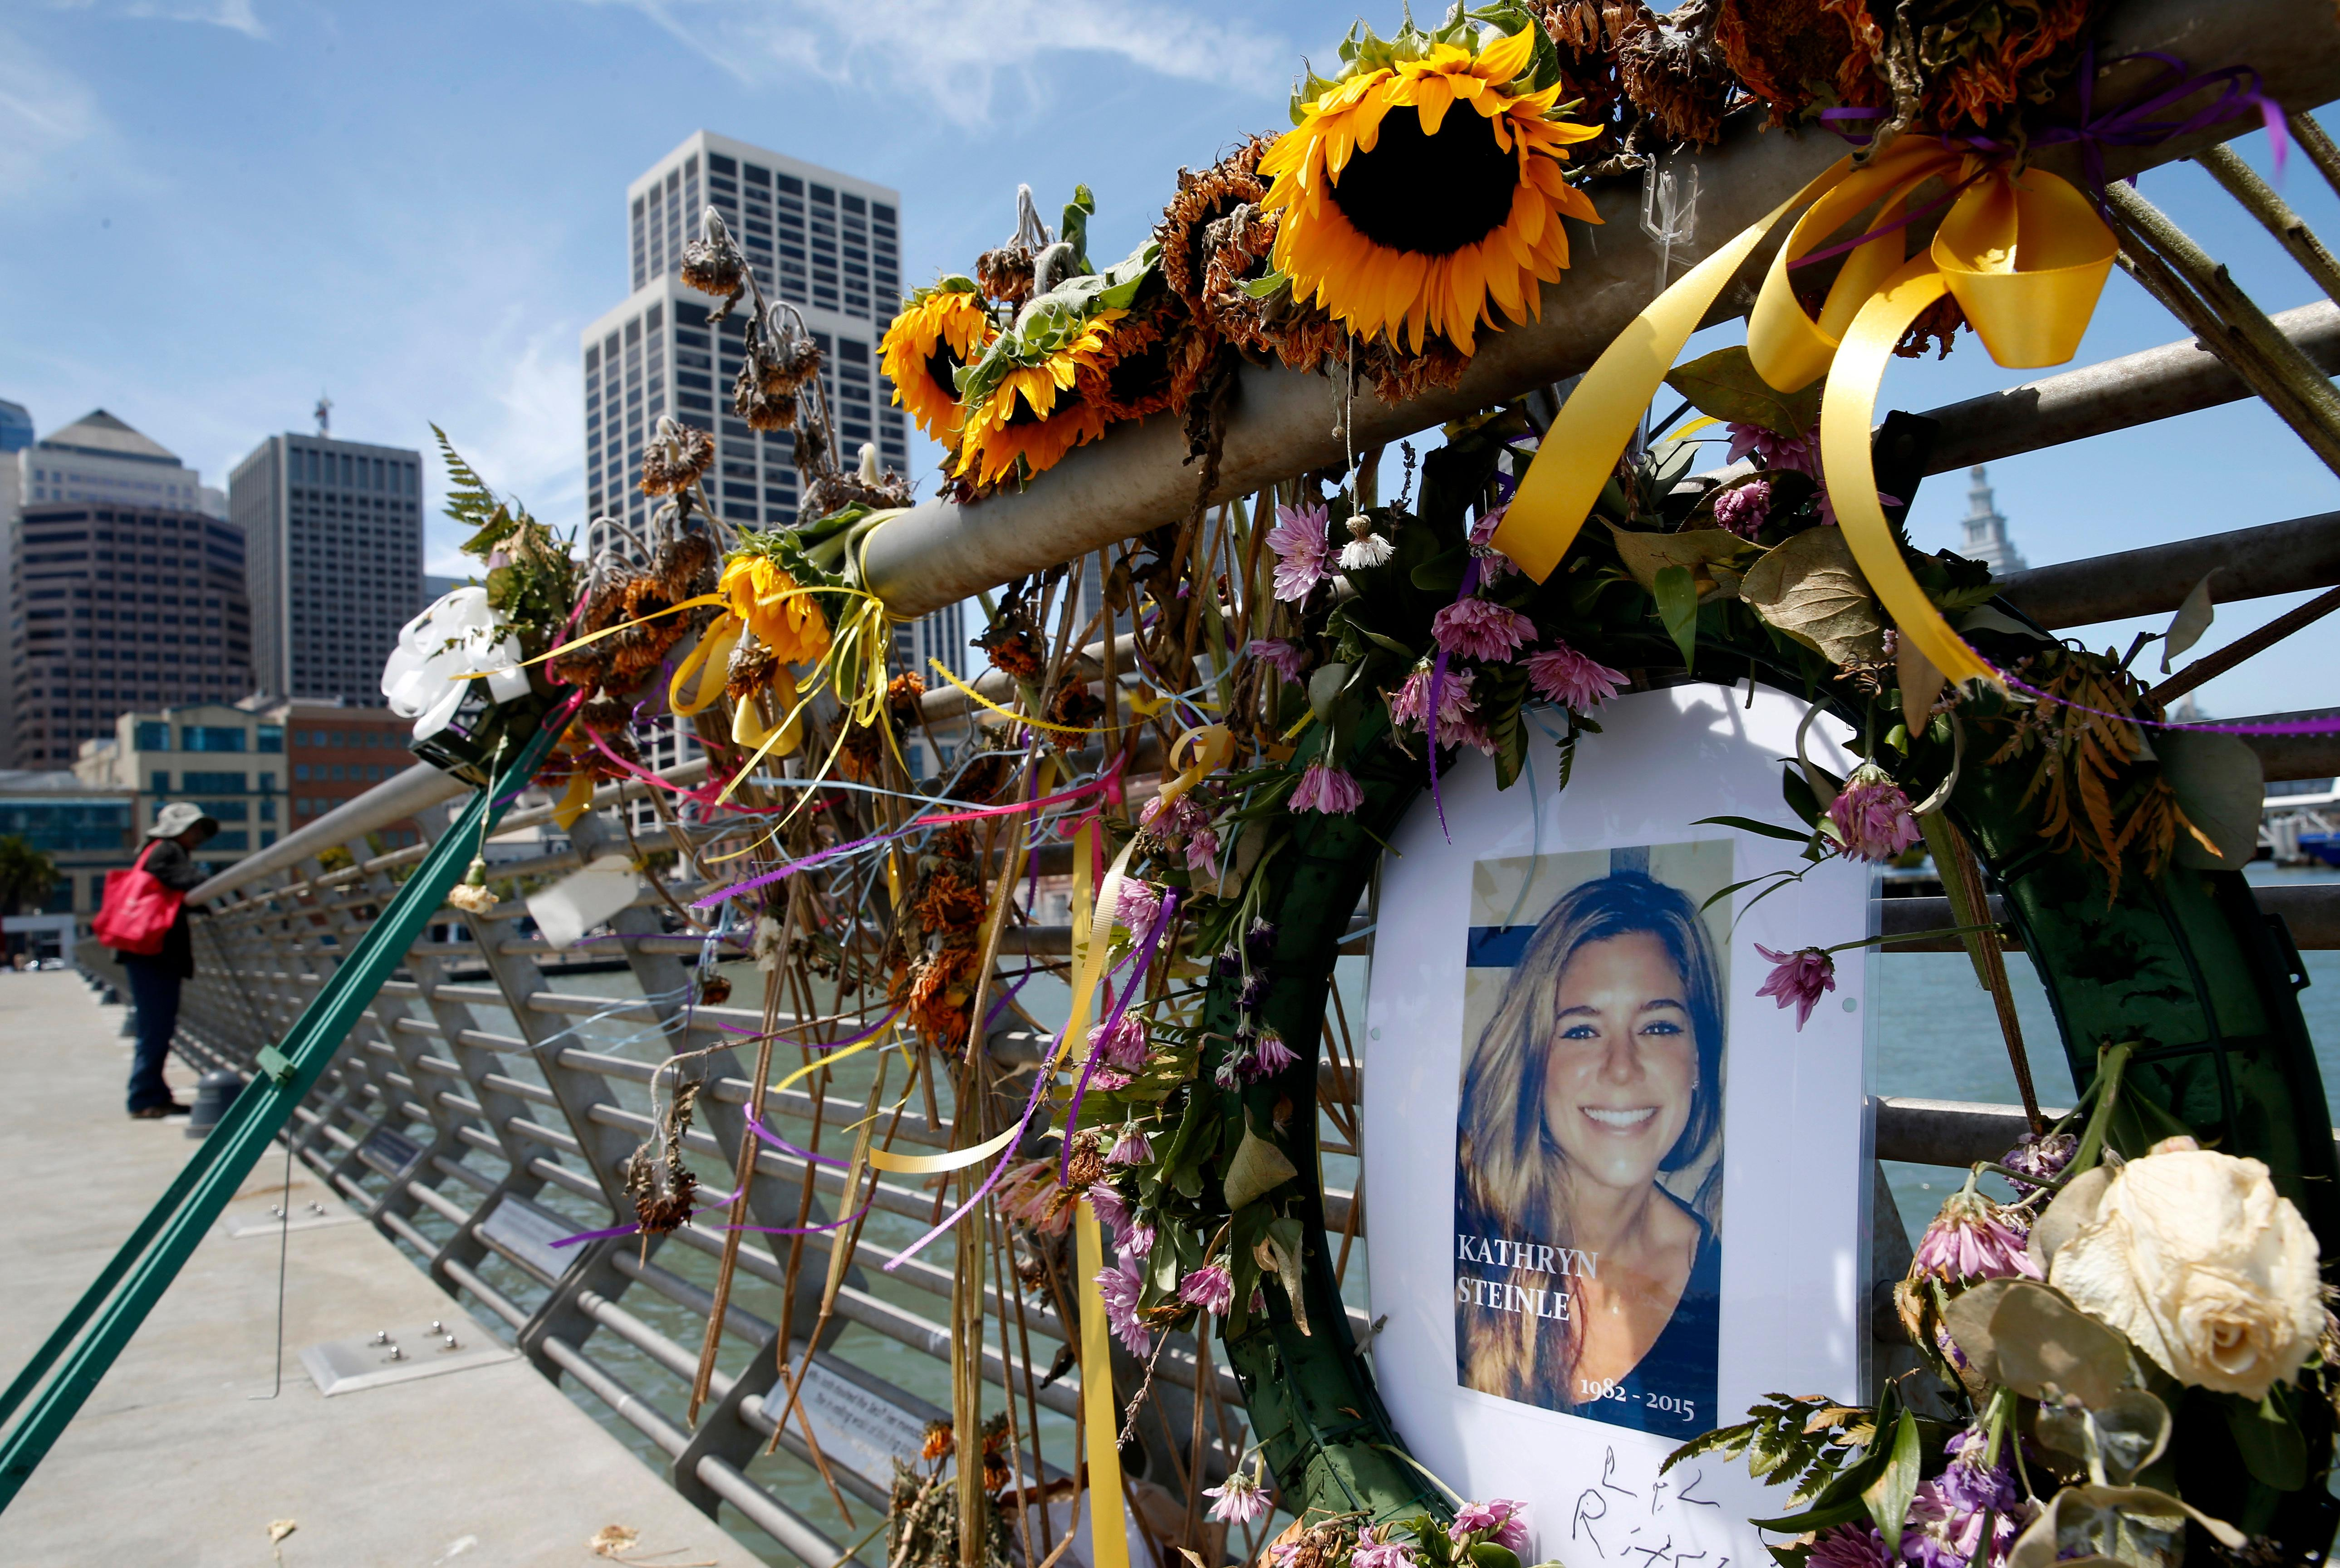 FILE - In this July 17, 2015 file photo, flowers and a portrait of Kate Steinle remain at a memorial site on Pier 14 in San Francisco. Jurors ended their fifth day of deliberations Wednesday, Nov. 29, 2017, without reaching a verdict in the murder trial that sparked a national debate over immigration policy. The six men and six women are deciding whether Jose Ines Garcia Zarate meant to shoot Steinle as charged or whether they believe his claim that the the shooting was accidental. (Paul Chinn/San Francisco Chronicle via AP, File)